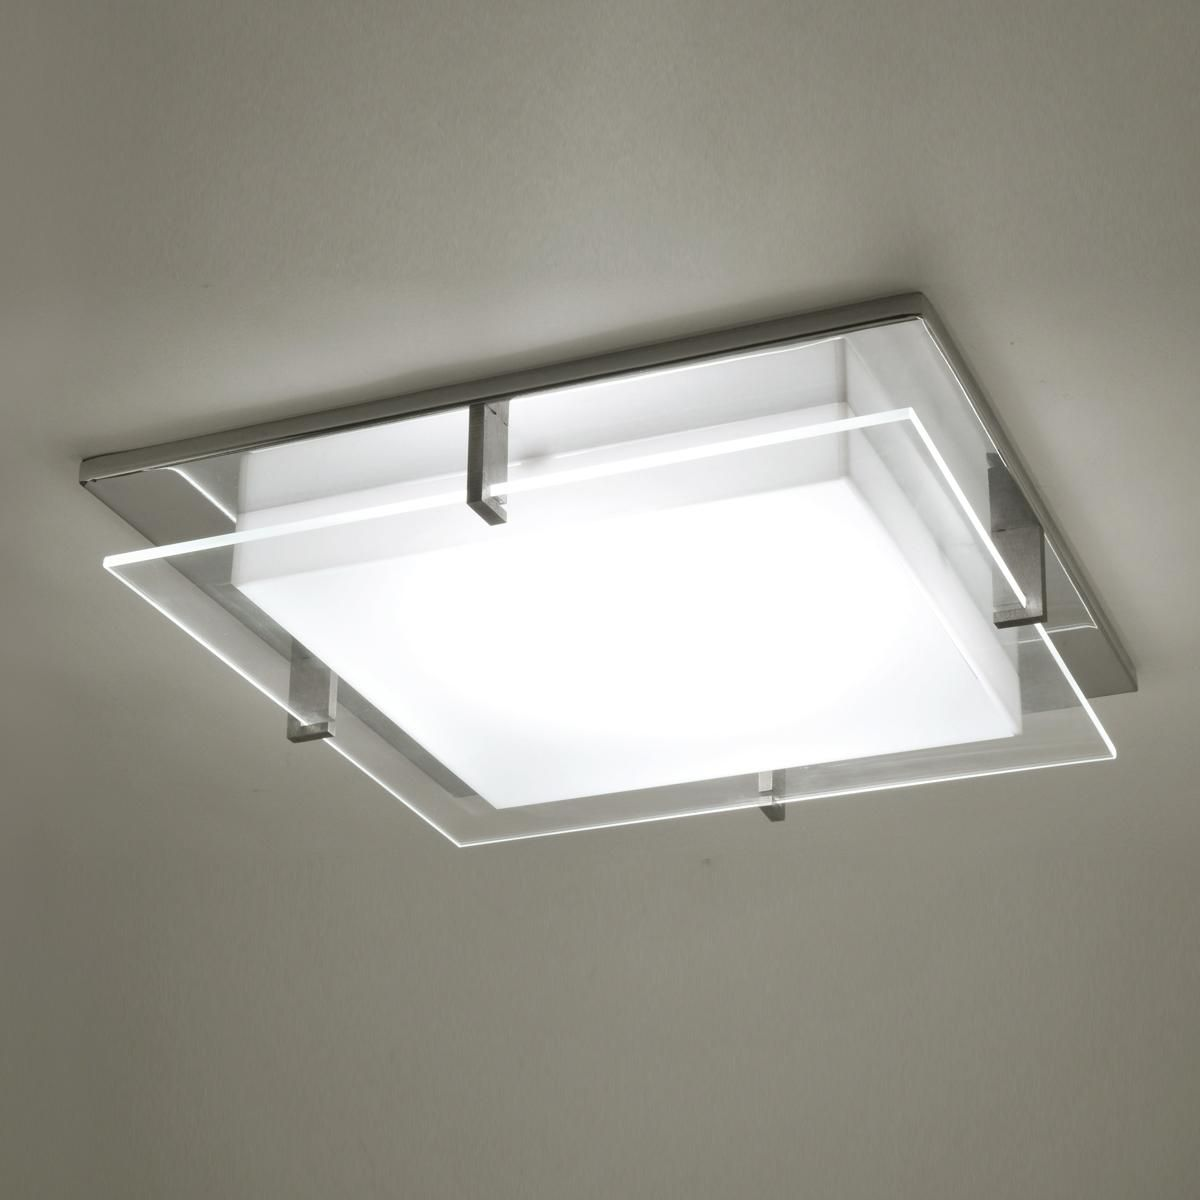 Modern Square Ceiling Light Adapter for Recessed Light | Concept ...